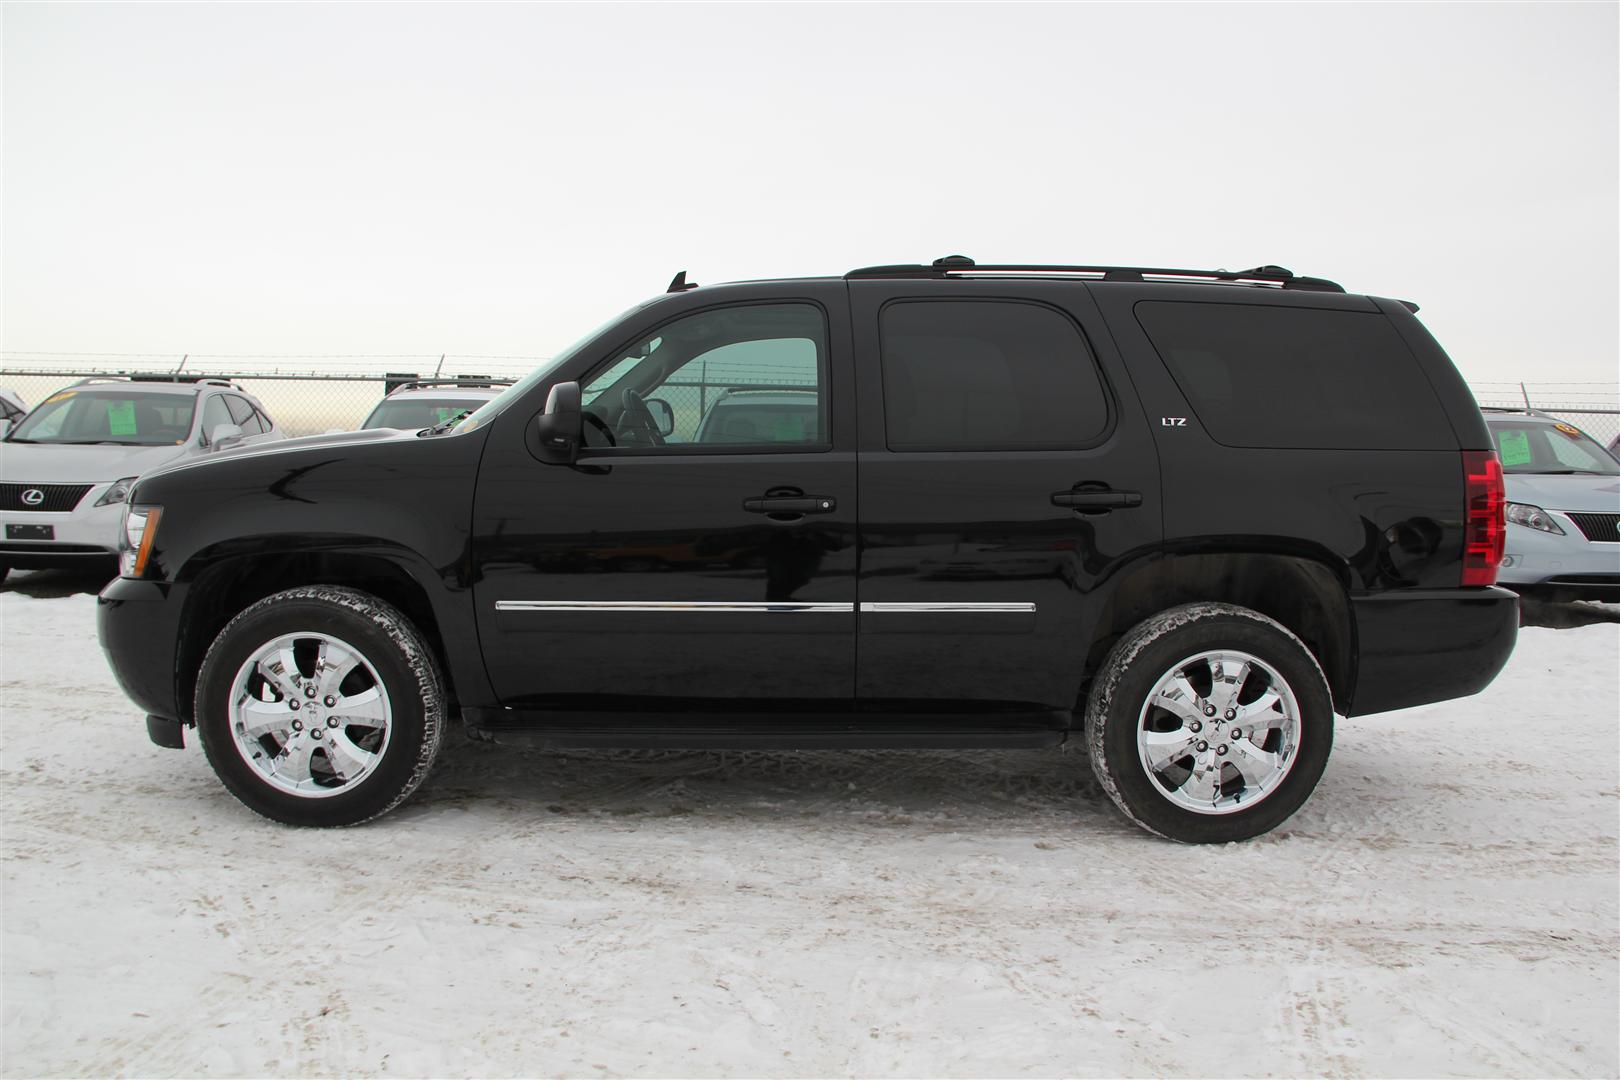 2013 chevy tahoe ltz price autos post. Black Bedroom Furniture Sets. Home Design Ideas